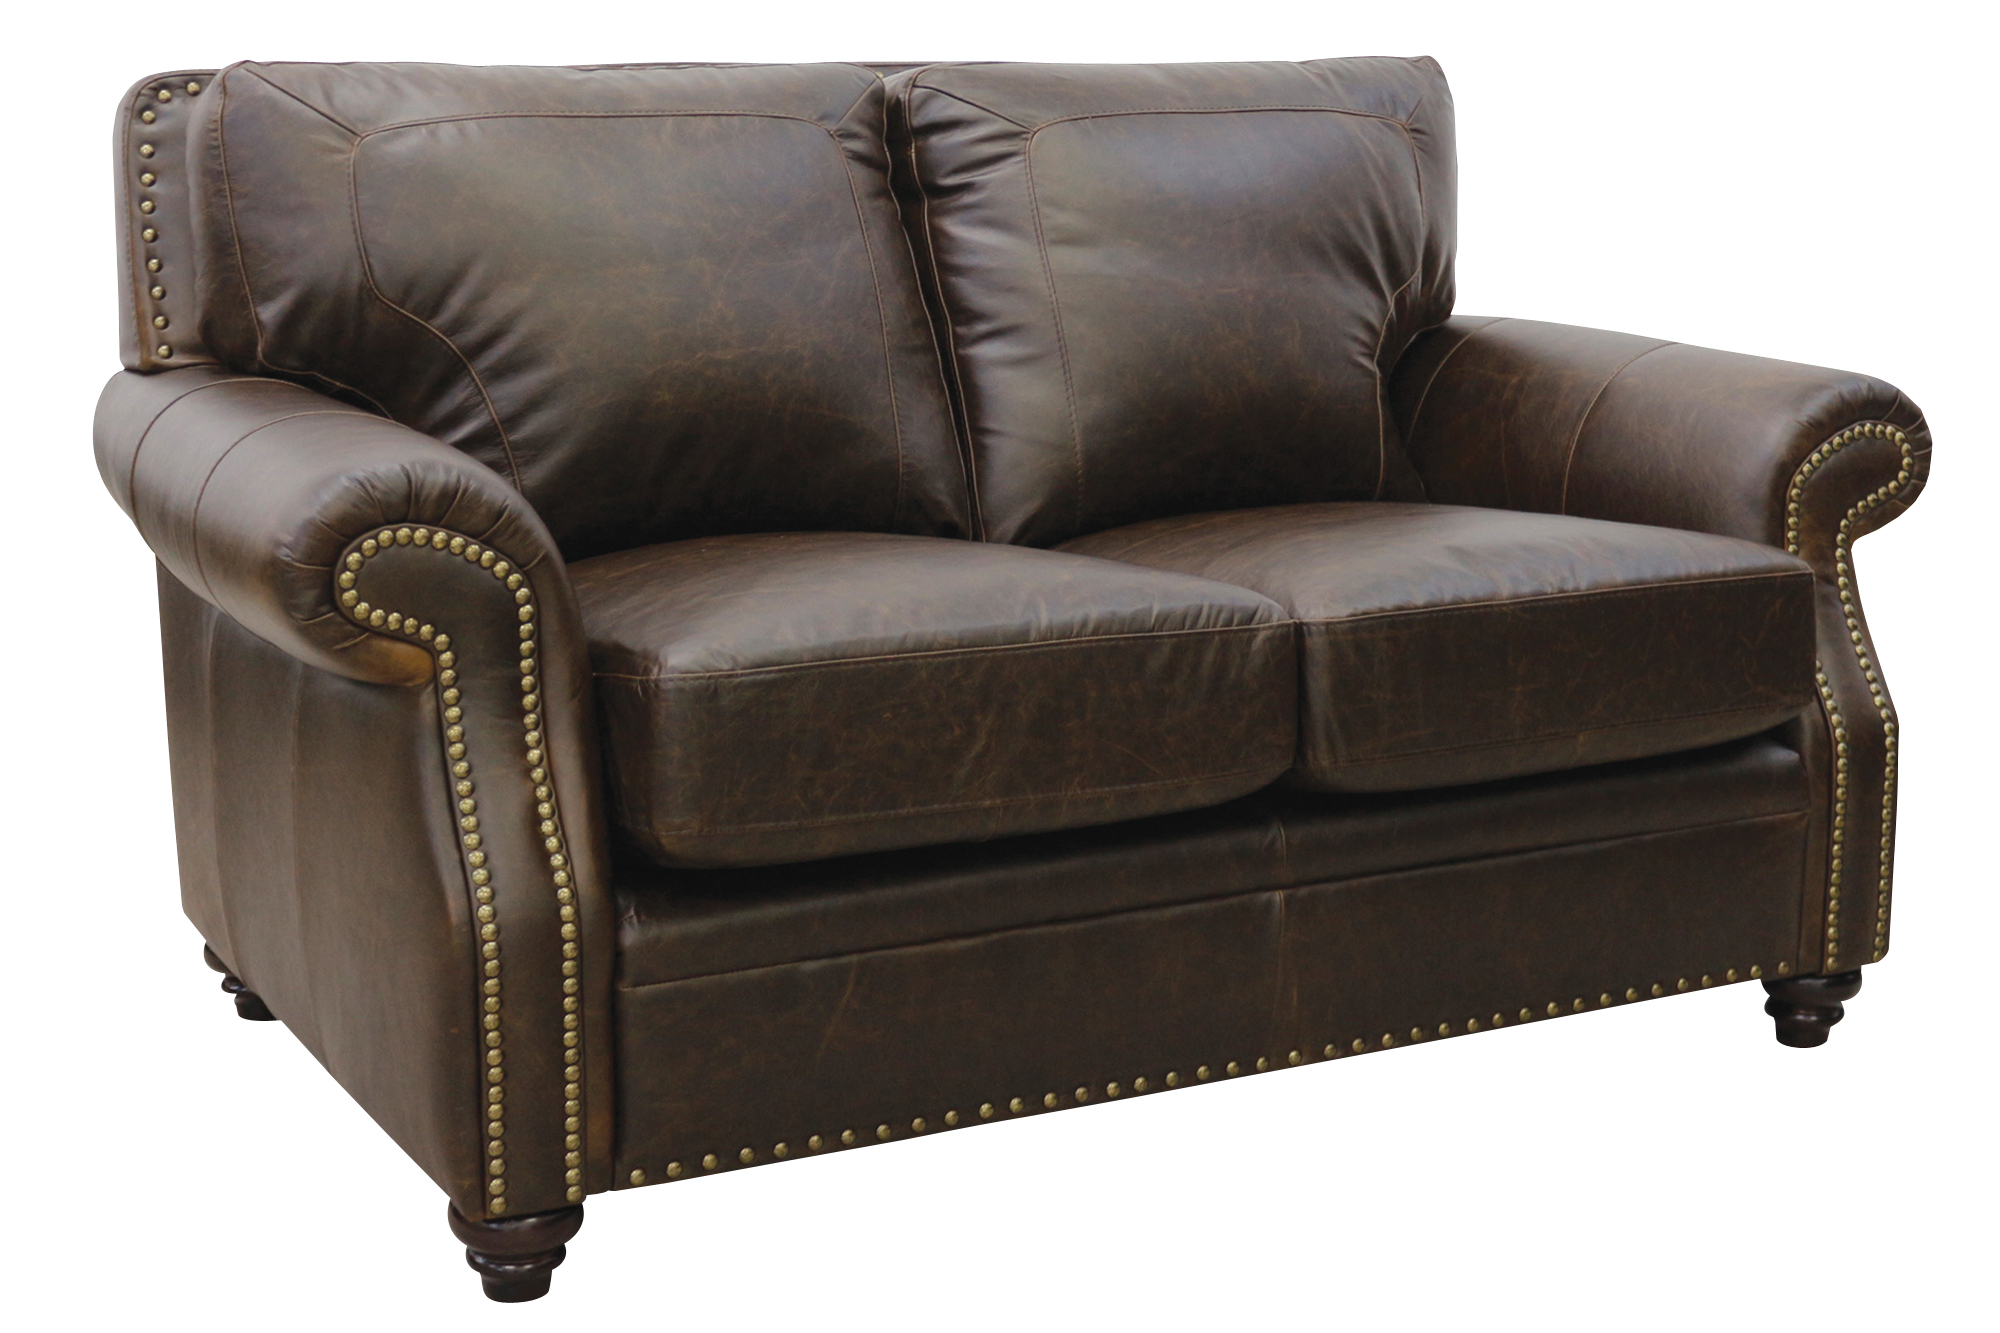 New Luke Leather Furniture Italian Made Mason Chocolate